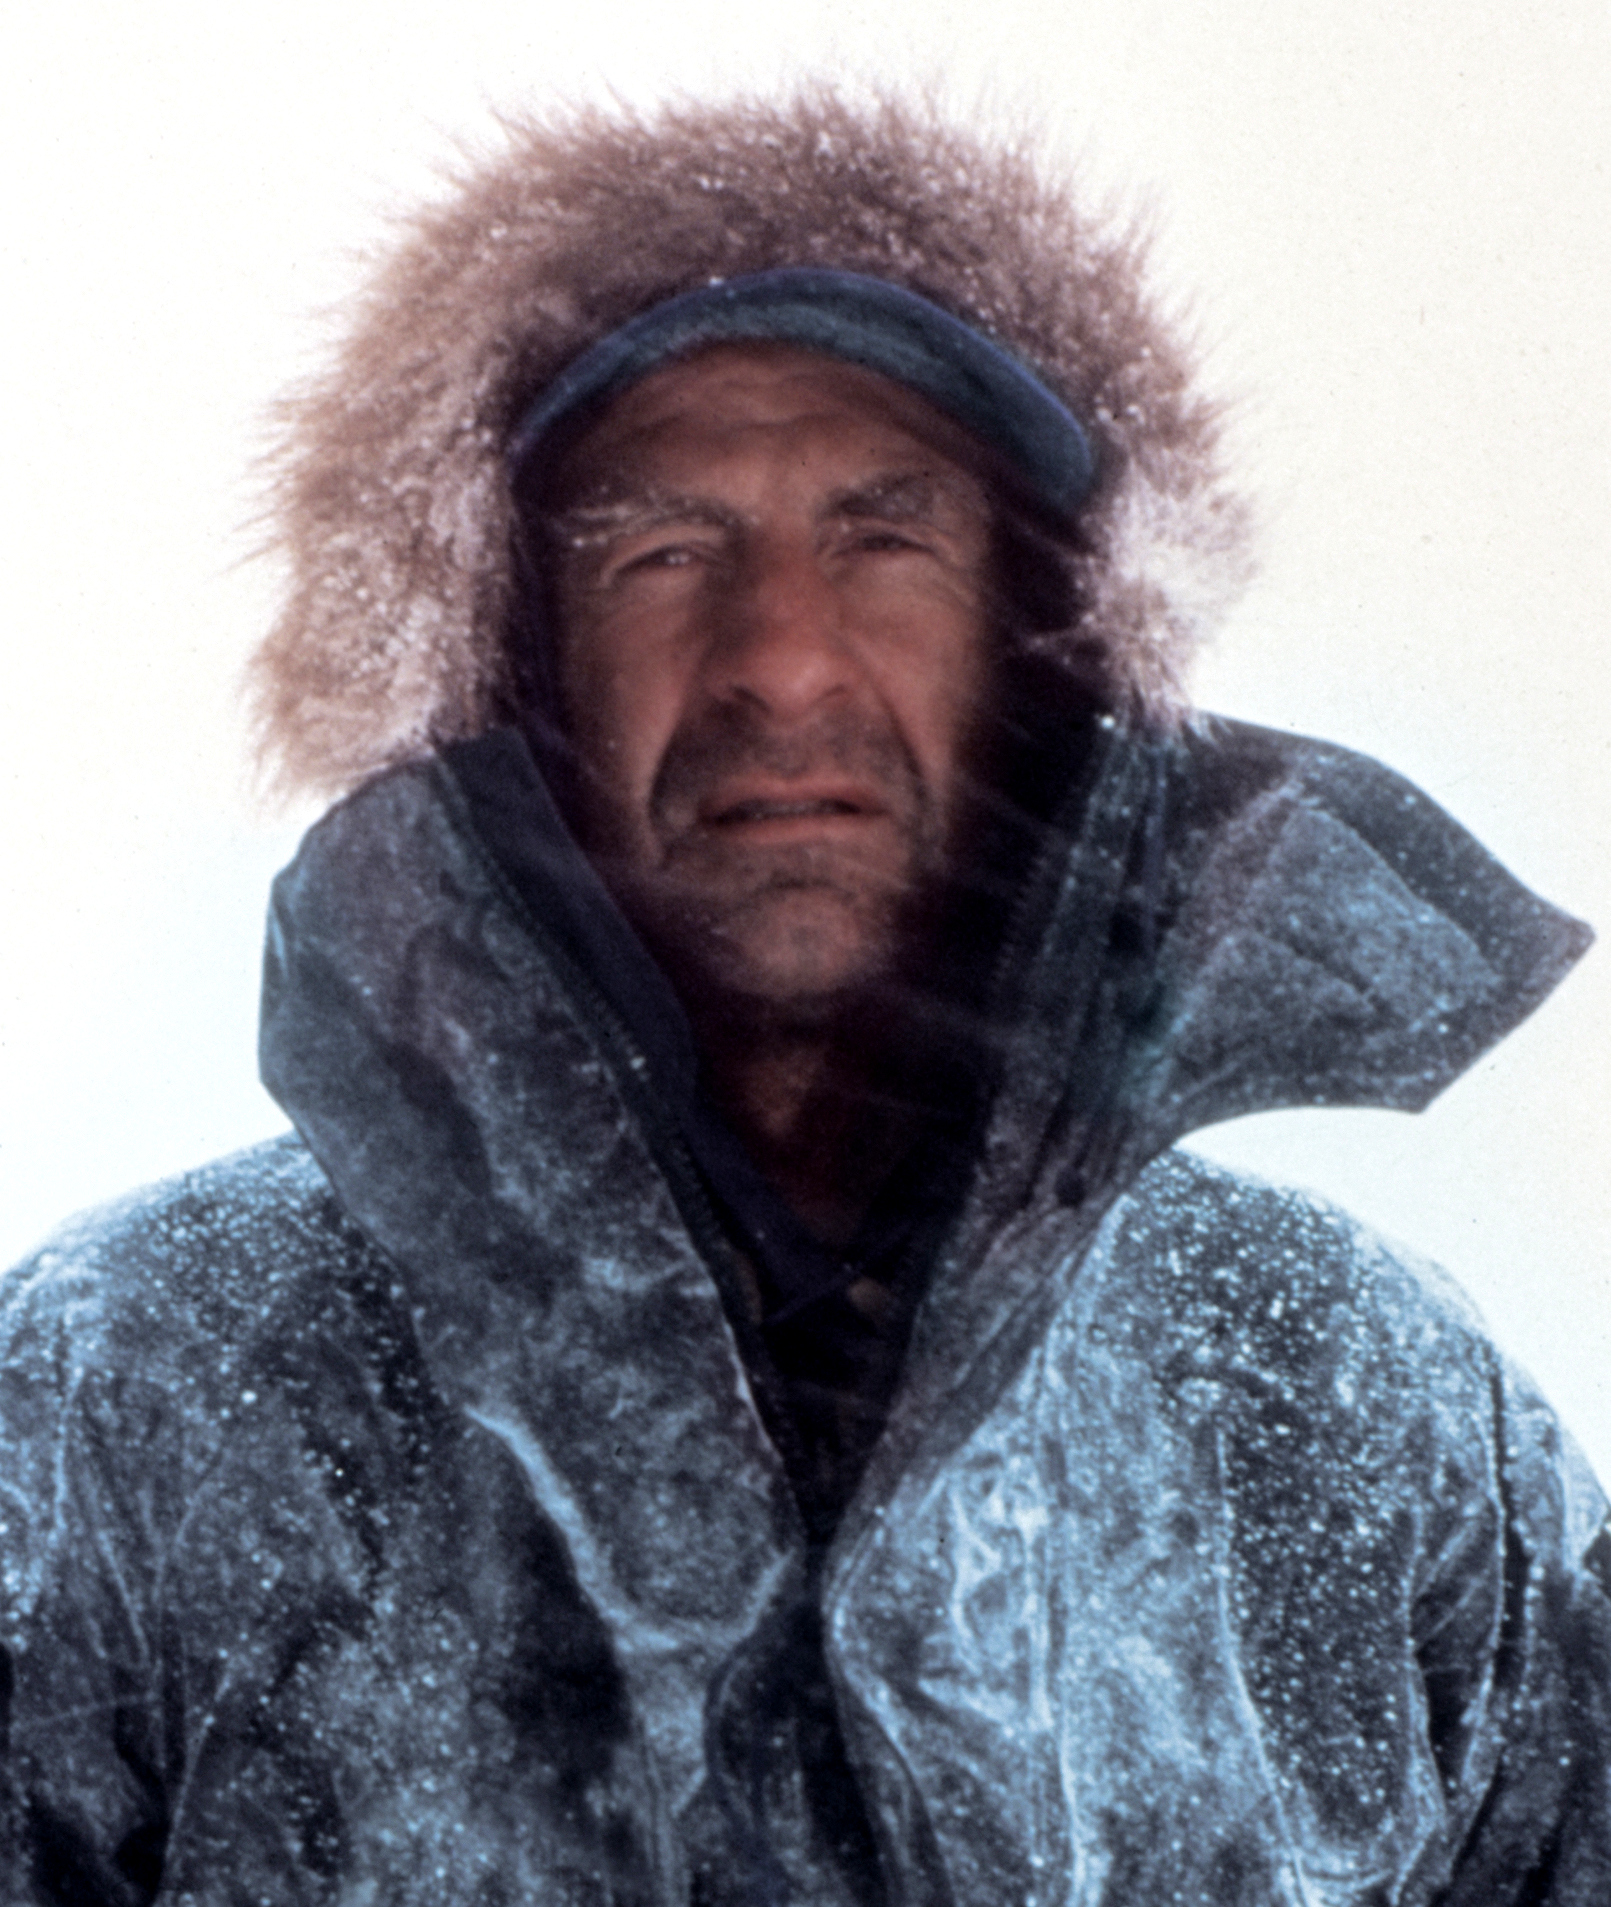 Ranulph Fiennes speaker - Photo by John Cleare